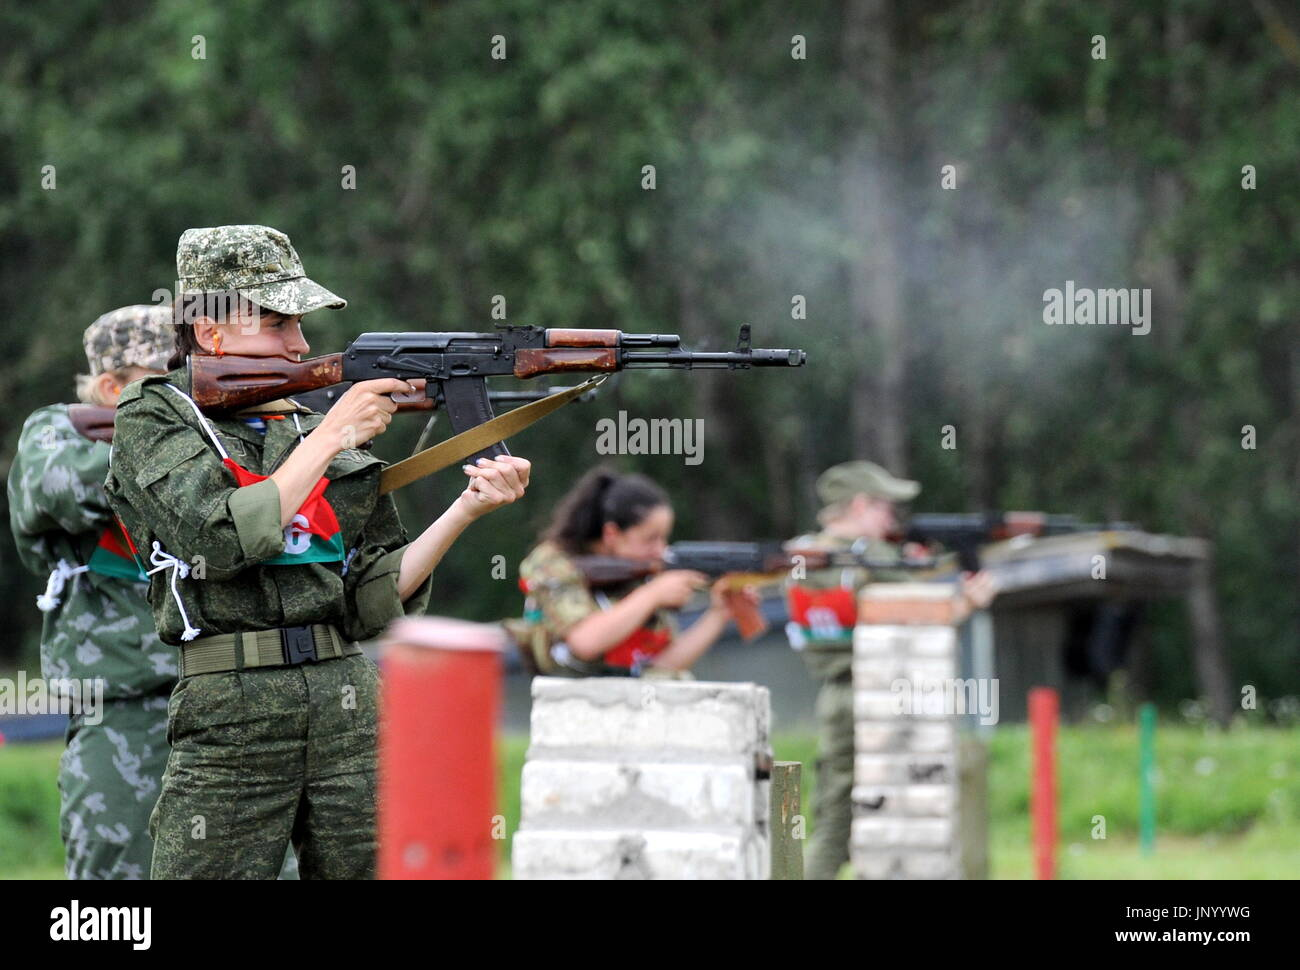 Minsk, Belarus. 31st July, 2017. Servicewomen participate in the Sniper marksmanship training contest as part of the Warrior of the Commonwealth stage of the 2017 International Army Games held by Russia's Defence Ministry. Credit: Viktor Drachev/TASS/Alamy Live News - Stock Image